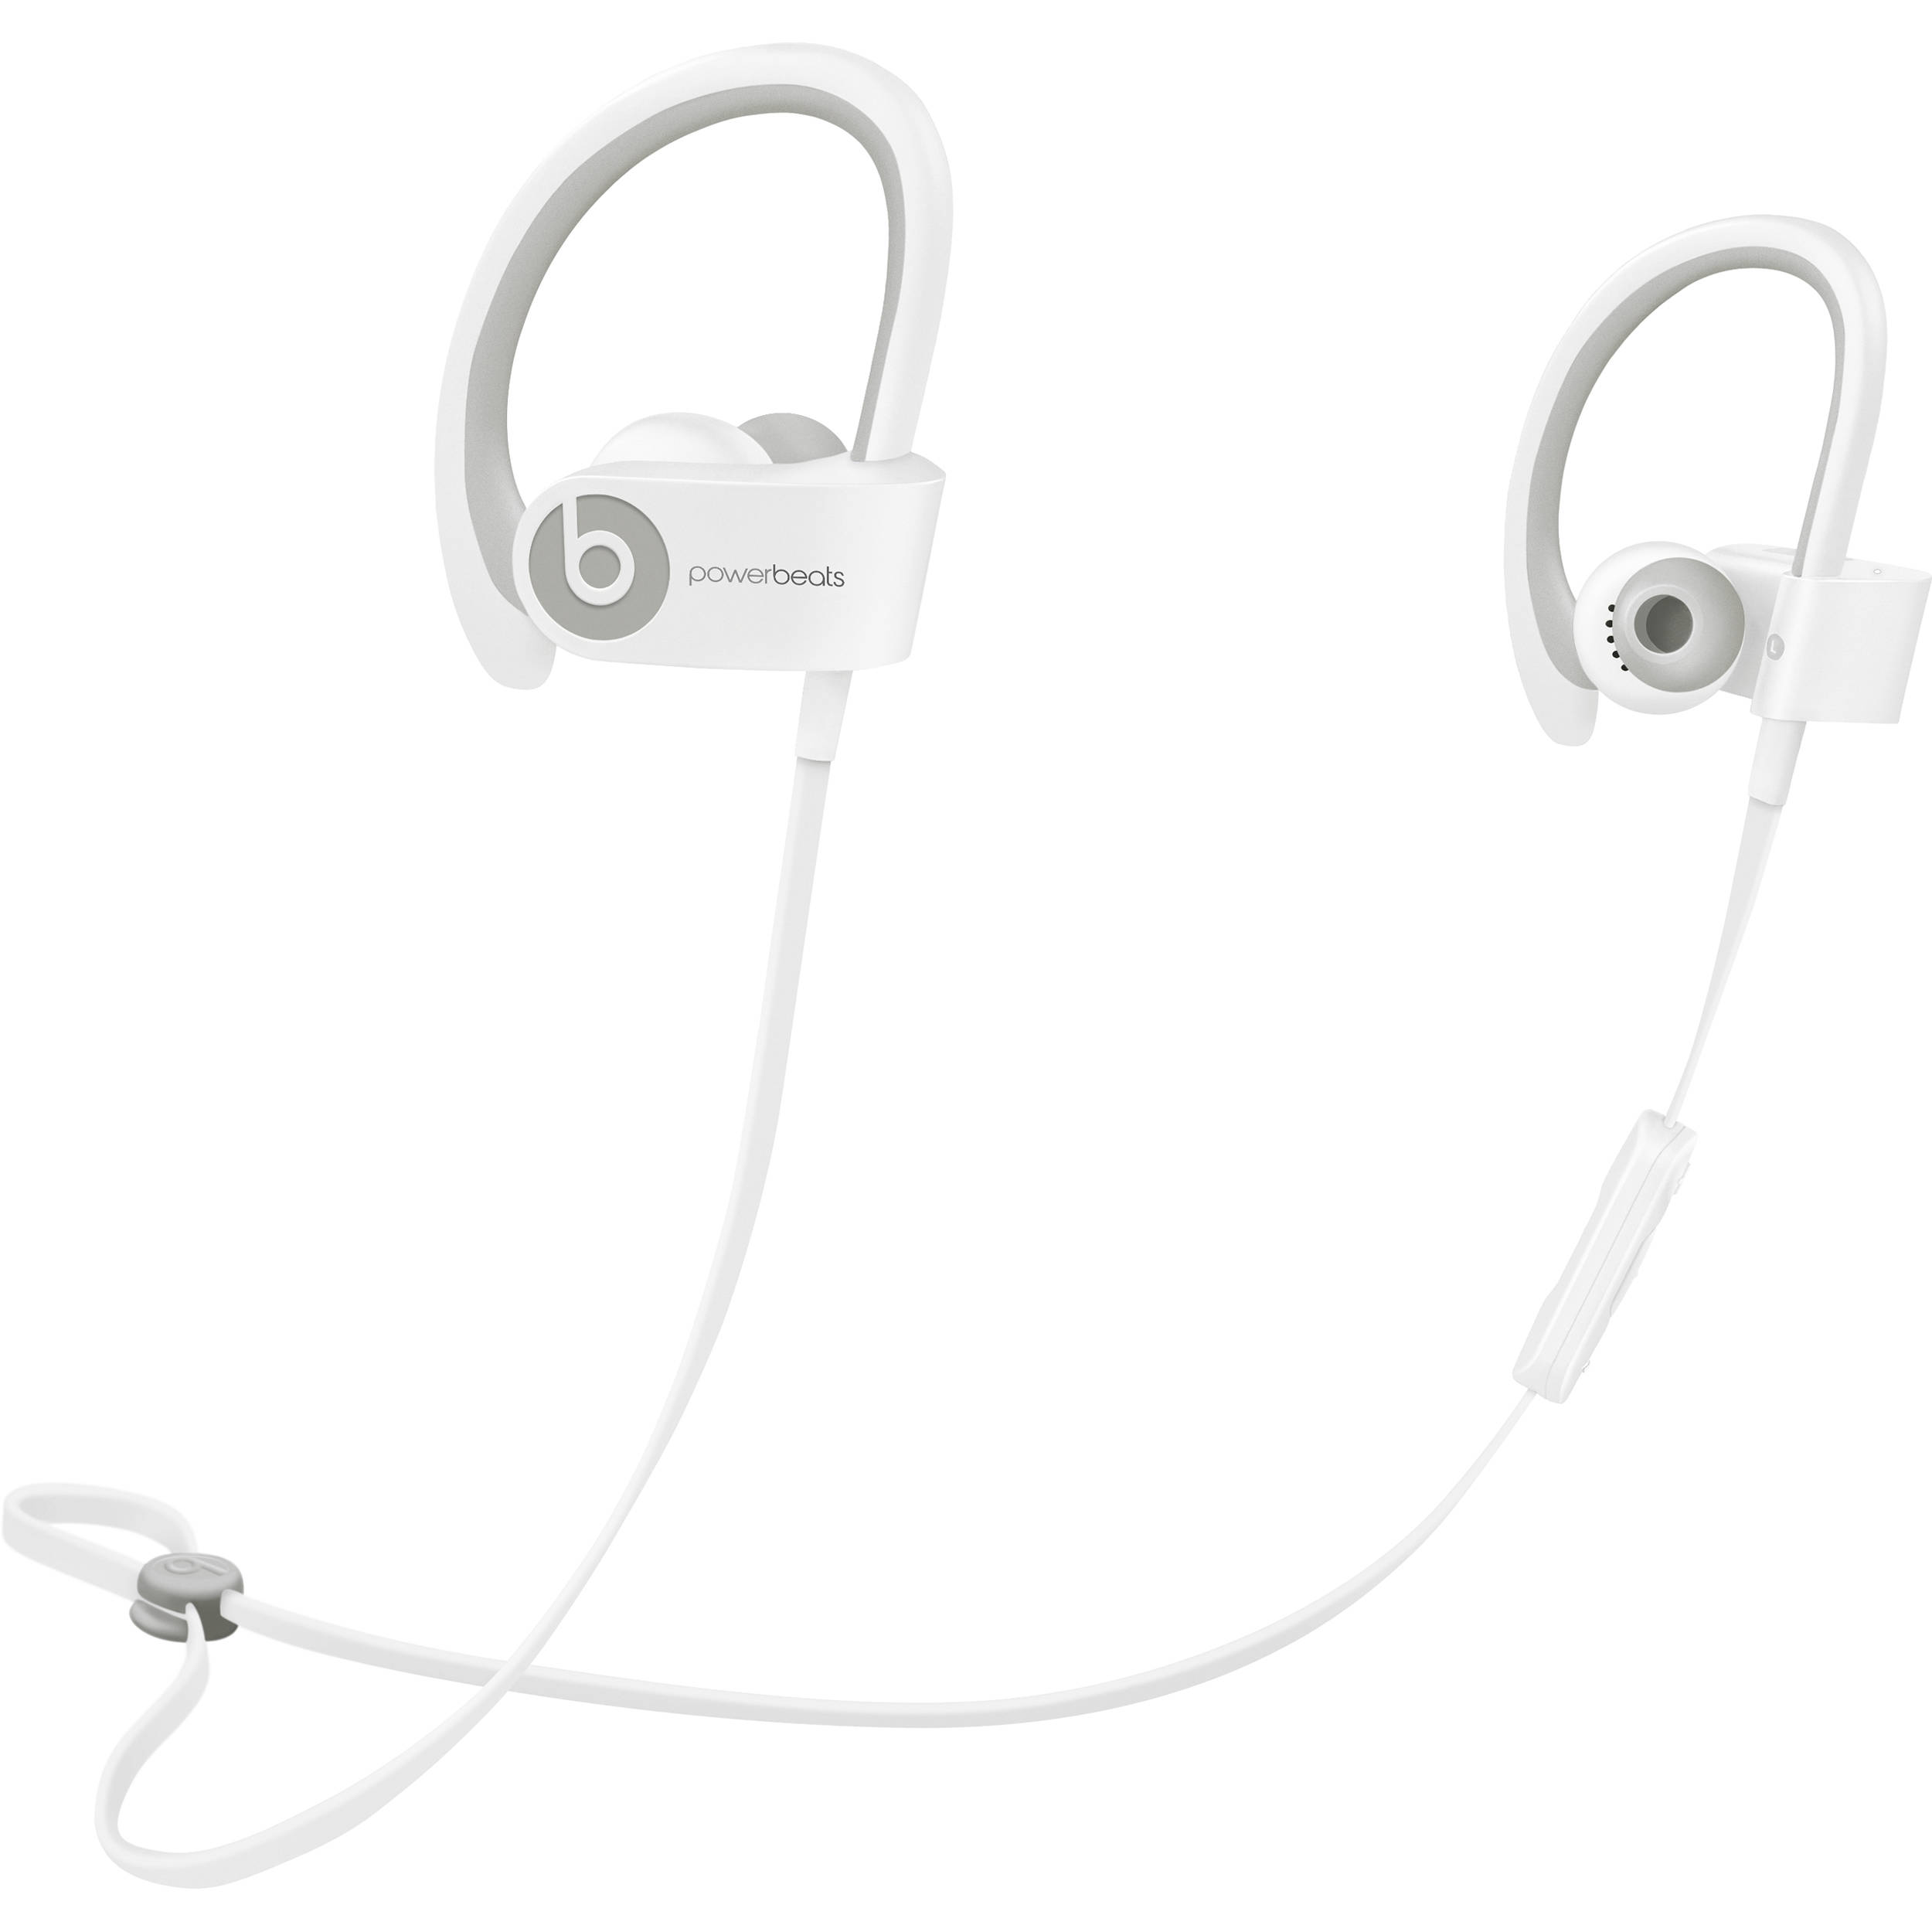 Dual driver earbuds white crown - headphones earbuds white apple 6